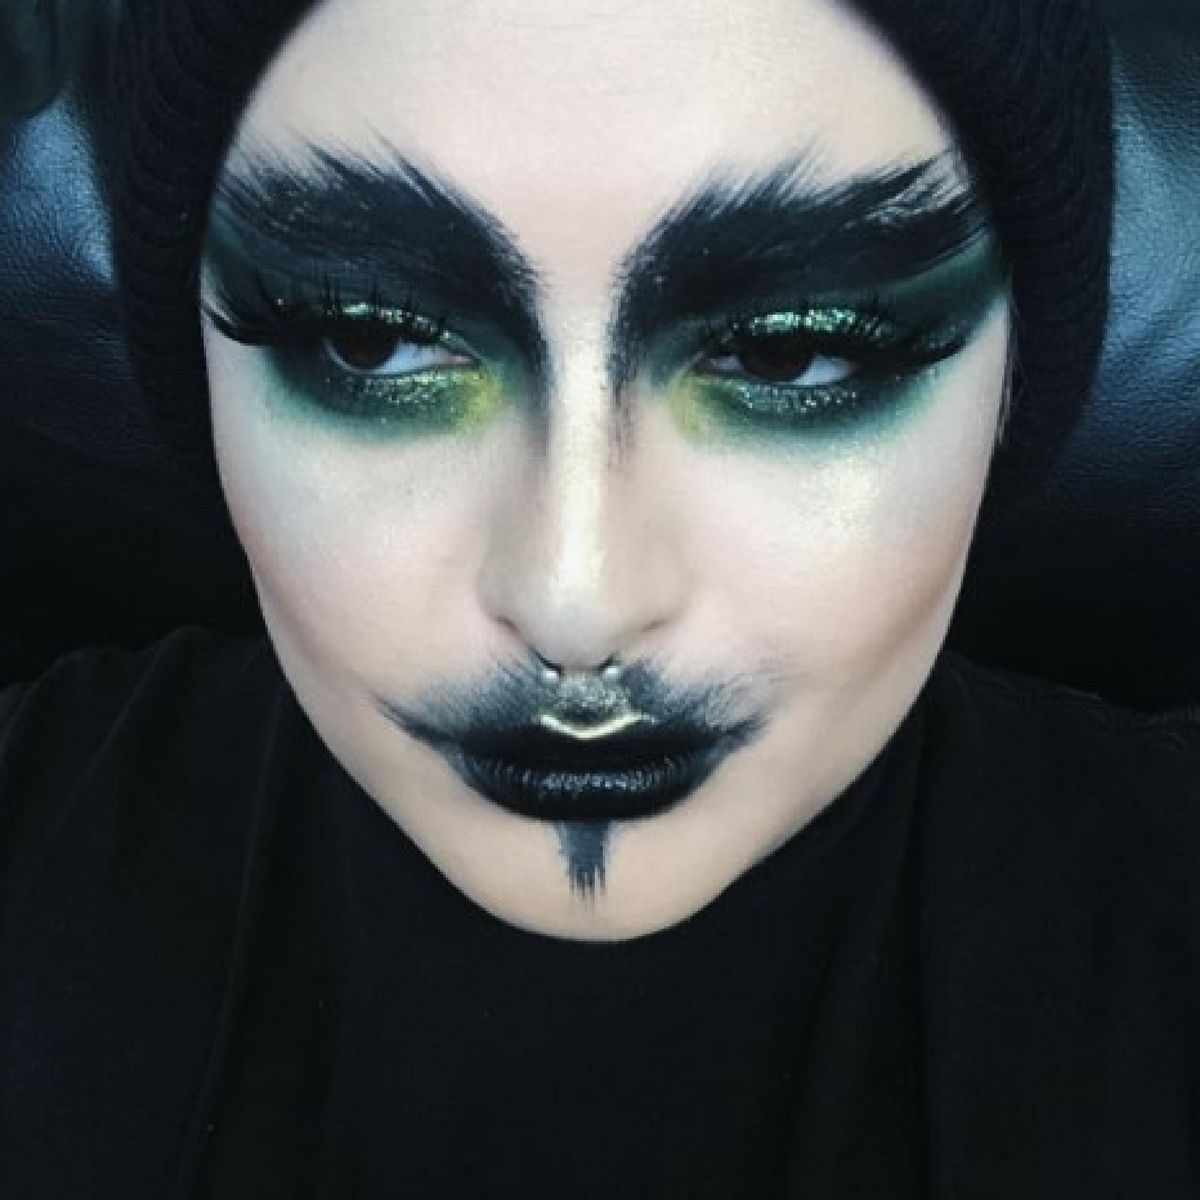 Succuvus is a well-known makeup mogul on Instagram with thousands of followers who are drawn to her eerie, cult-like style. Her real name? Anna Regaldo, an L.A. based artist who embraces both religious and satanic themes in her creations. More: http://blog.furlesscosmetics.com/anna-regaldo/